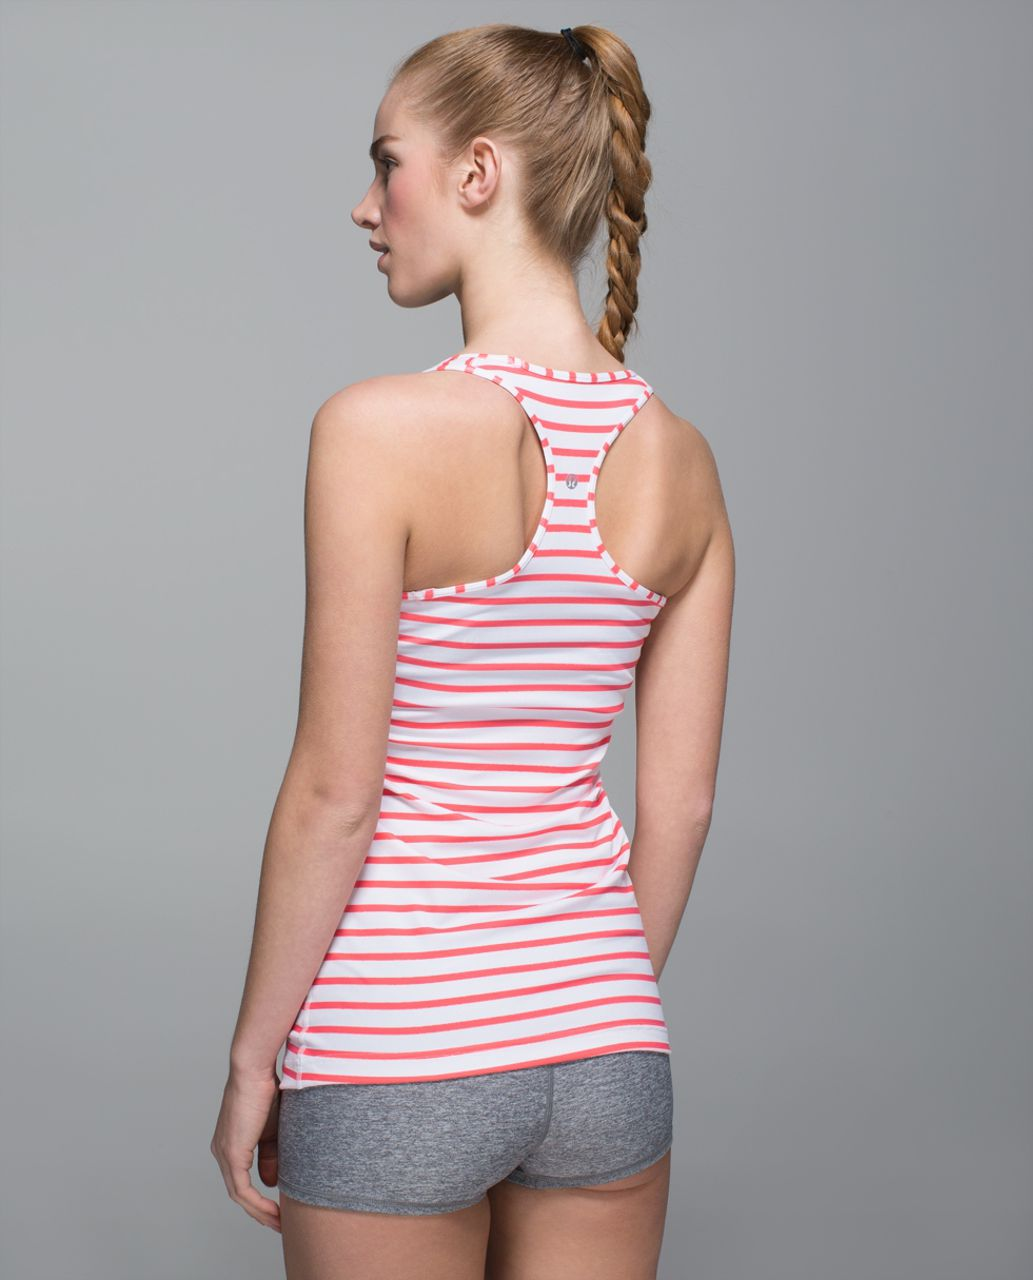 Lululemon Cool Racerback - Yachtie Stripe Printed White Flash Light